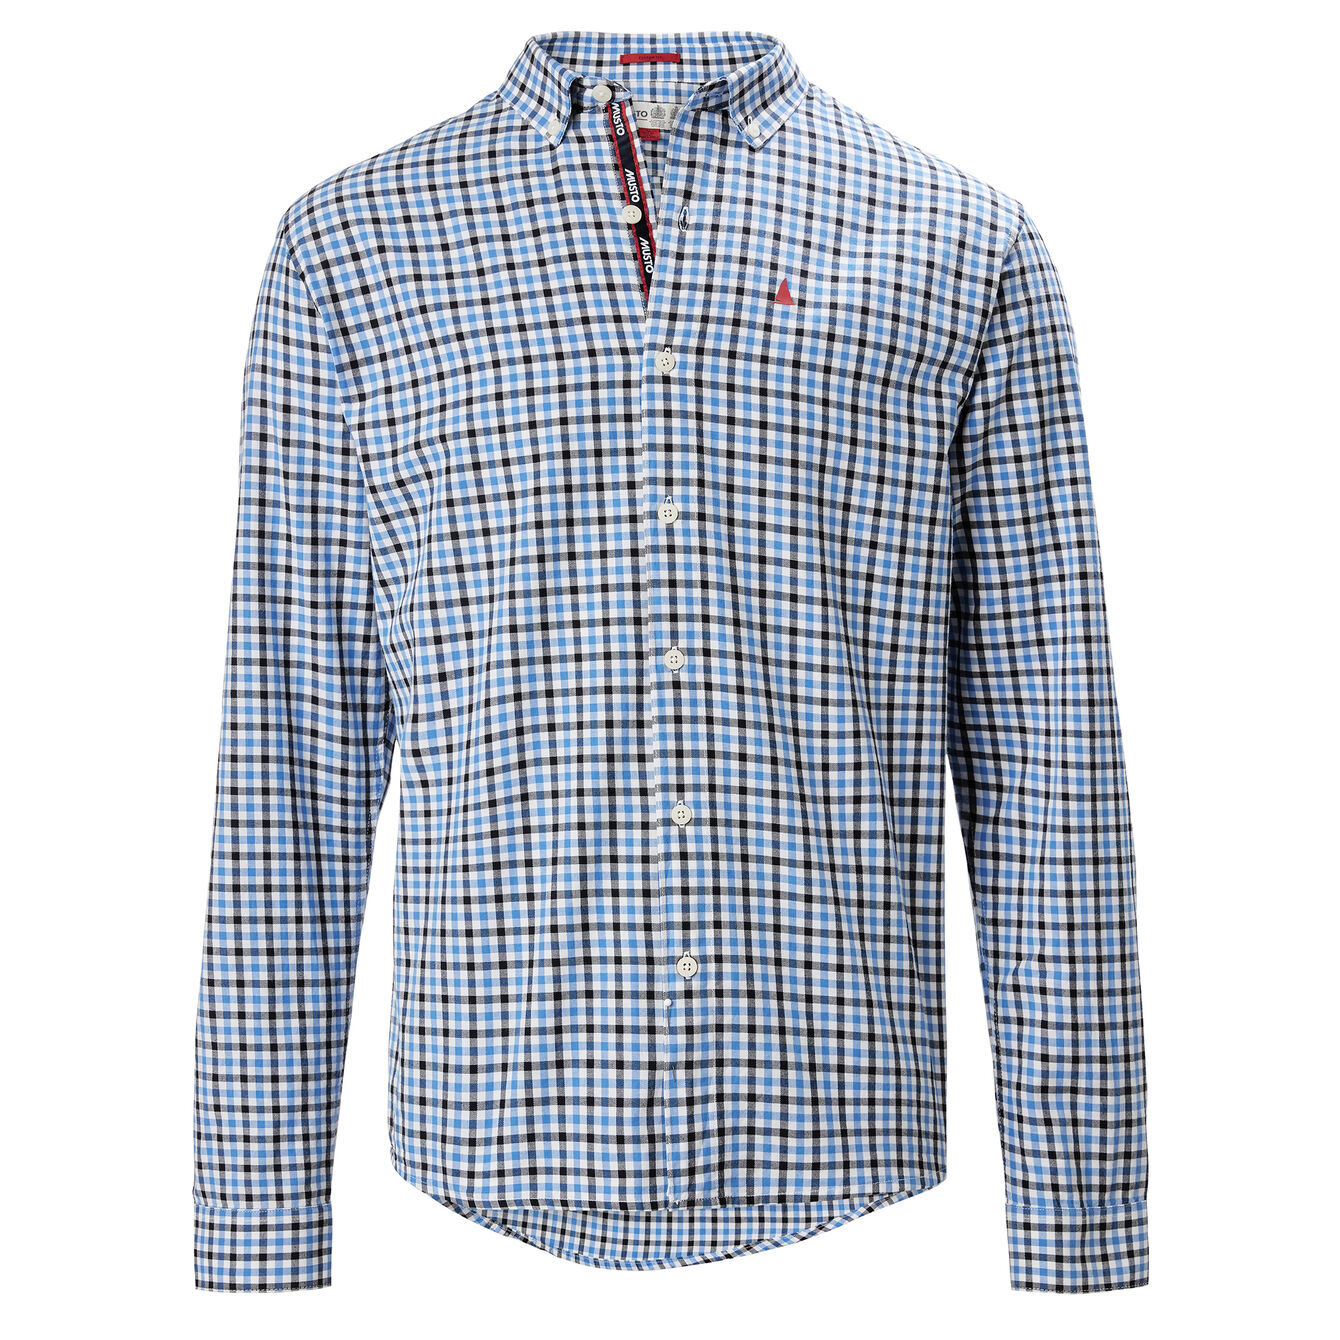 PORTO GINGHAM LS SHIRT